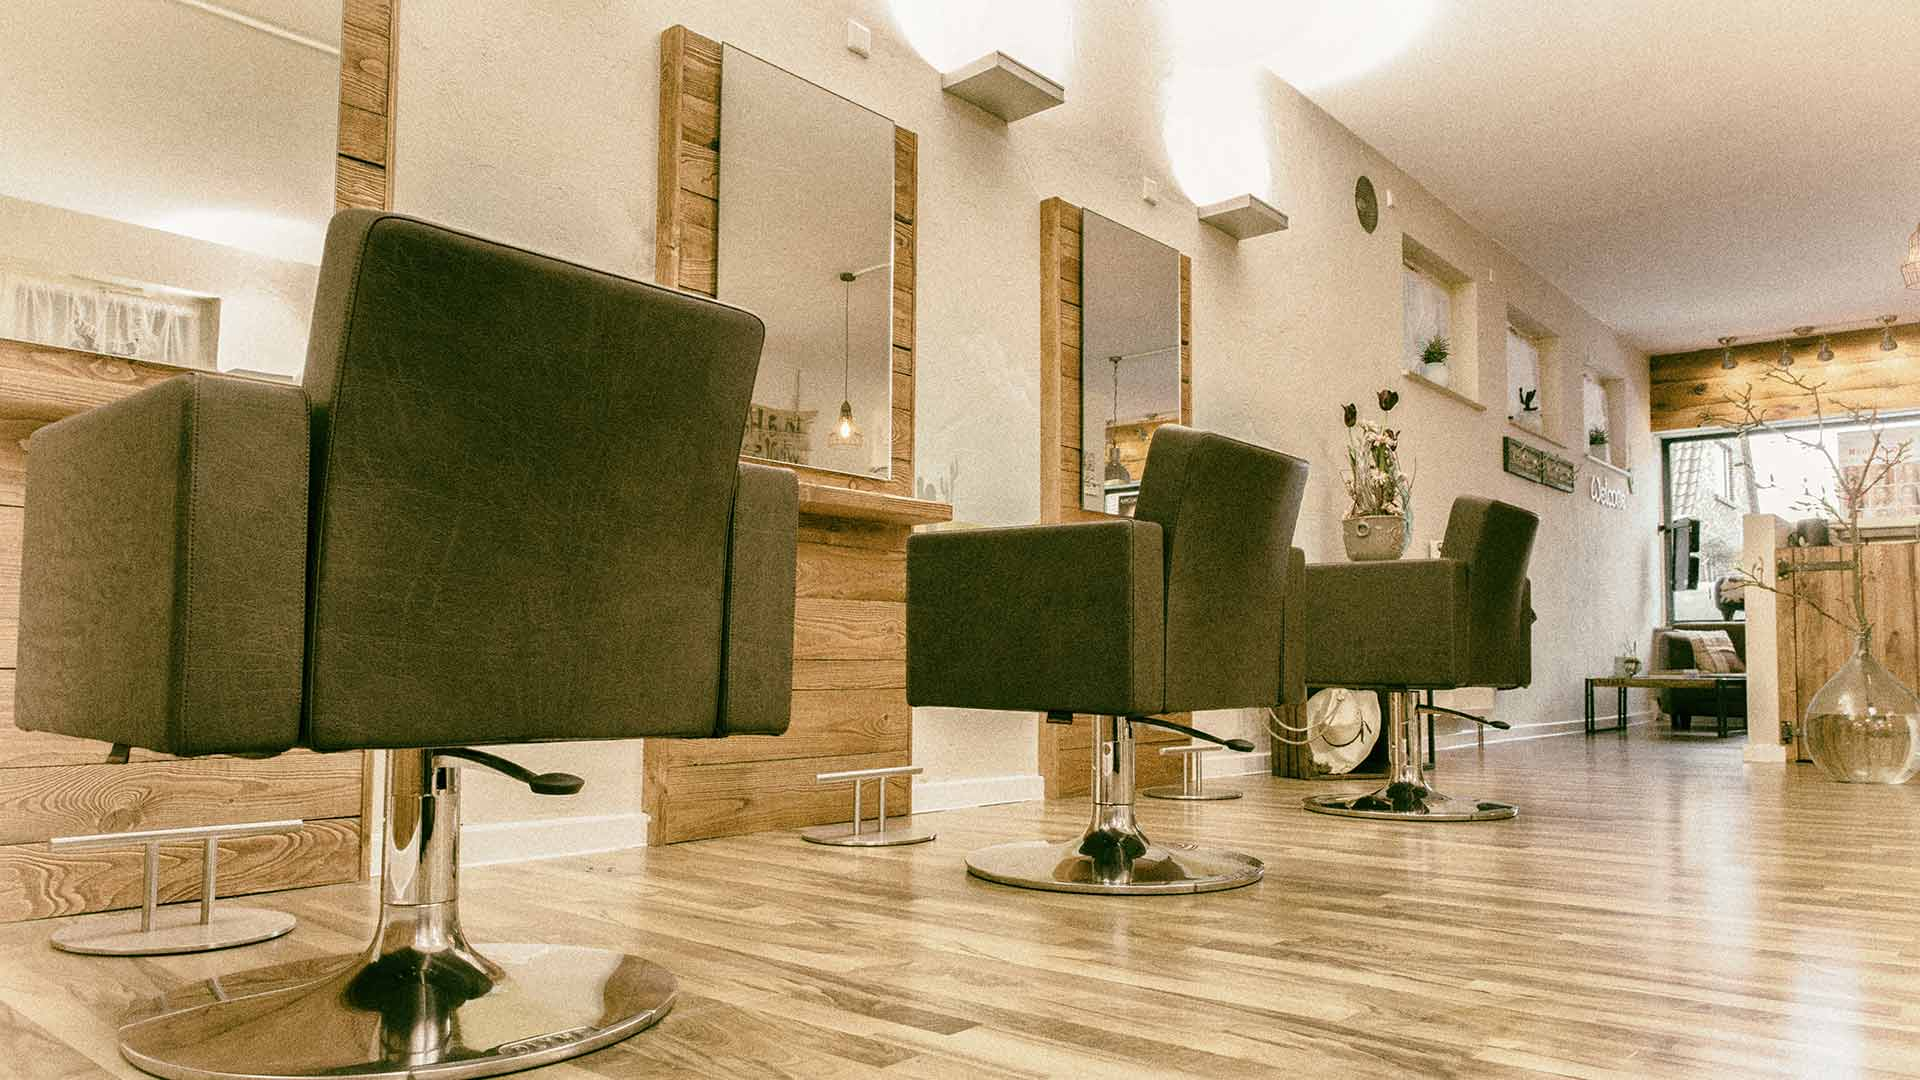 Saloon - Hairsaloon by Nadine